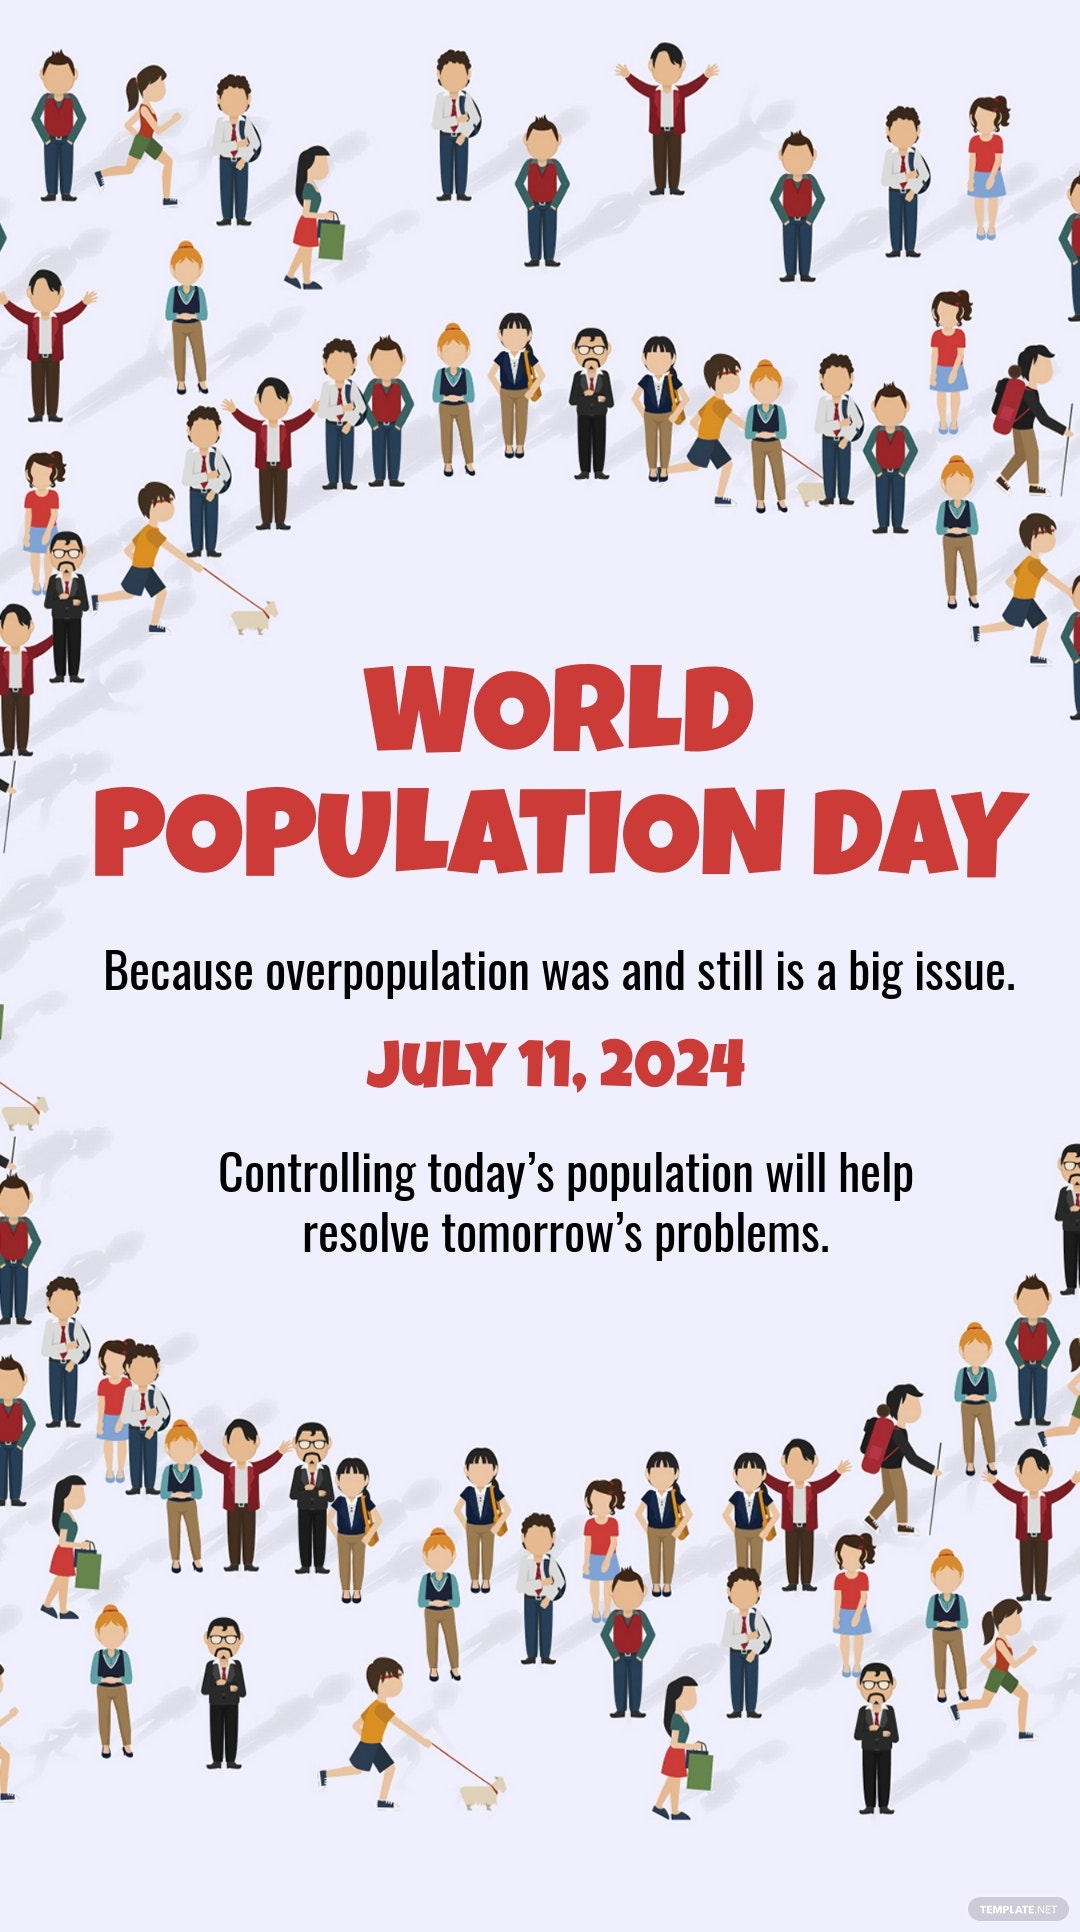 Free World Population Day Whatsapp Image Template.jpe